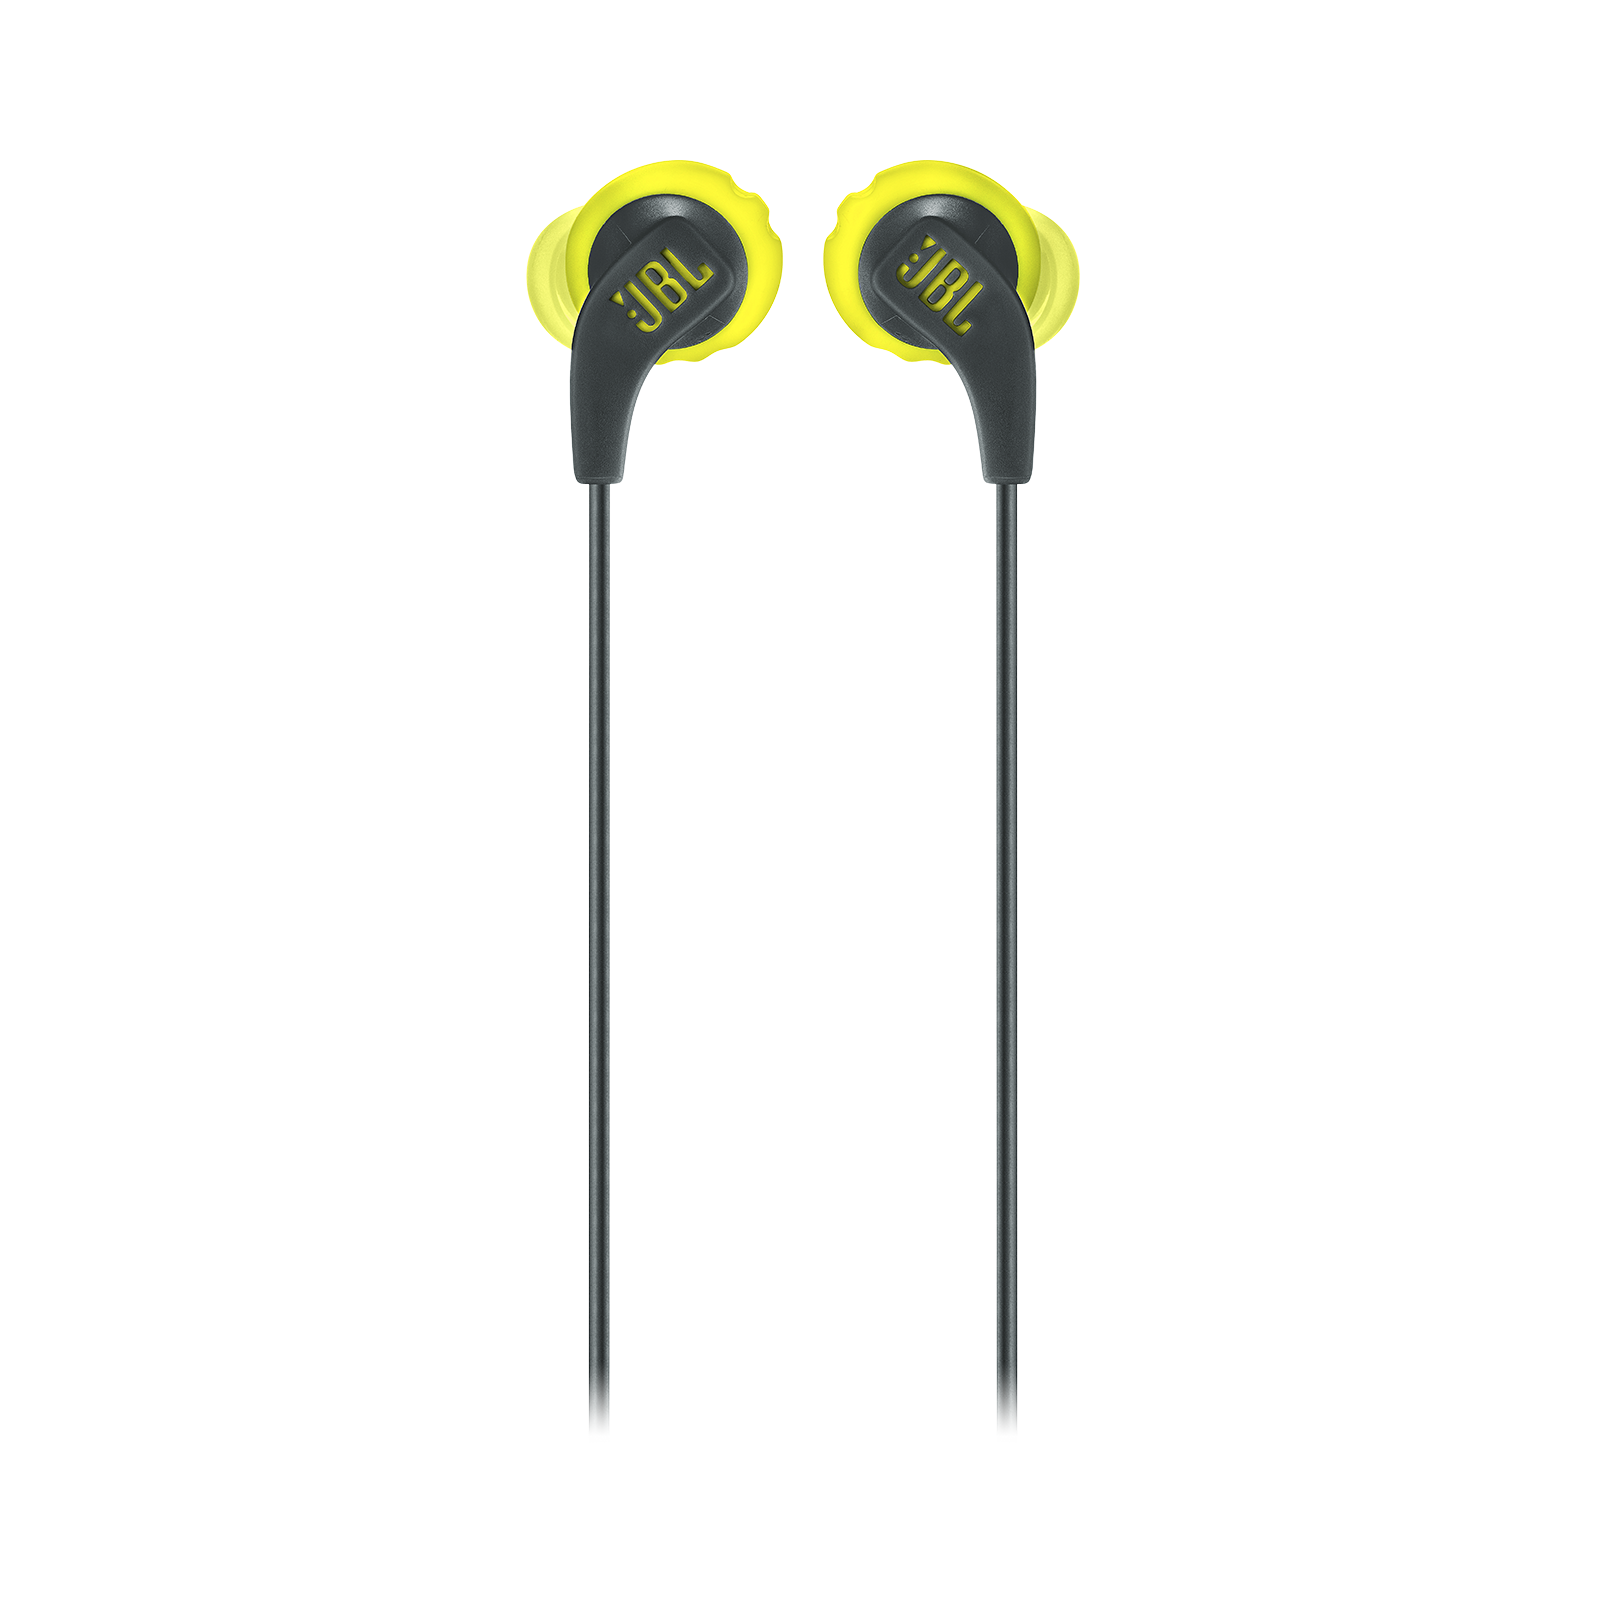 JBL Endurance RUN - Yellow - Sweatproof Wired Sport In-Ear Headphones - Front